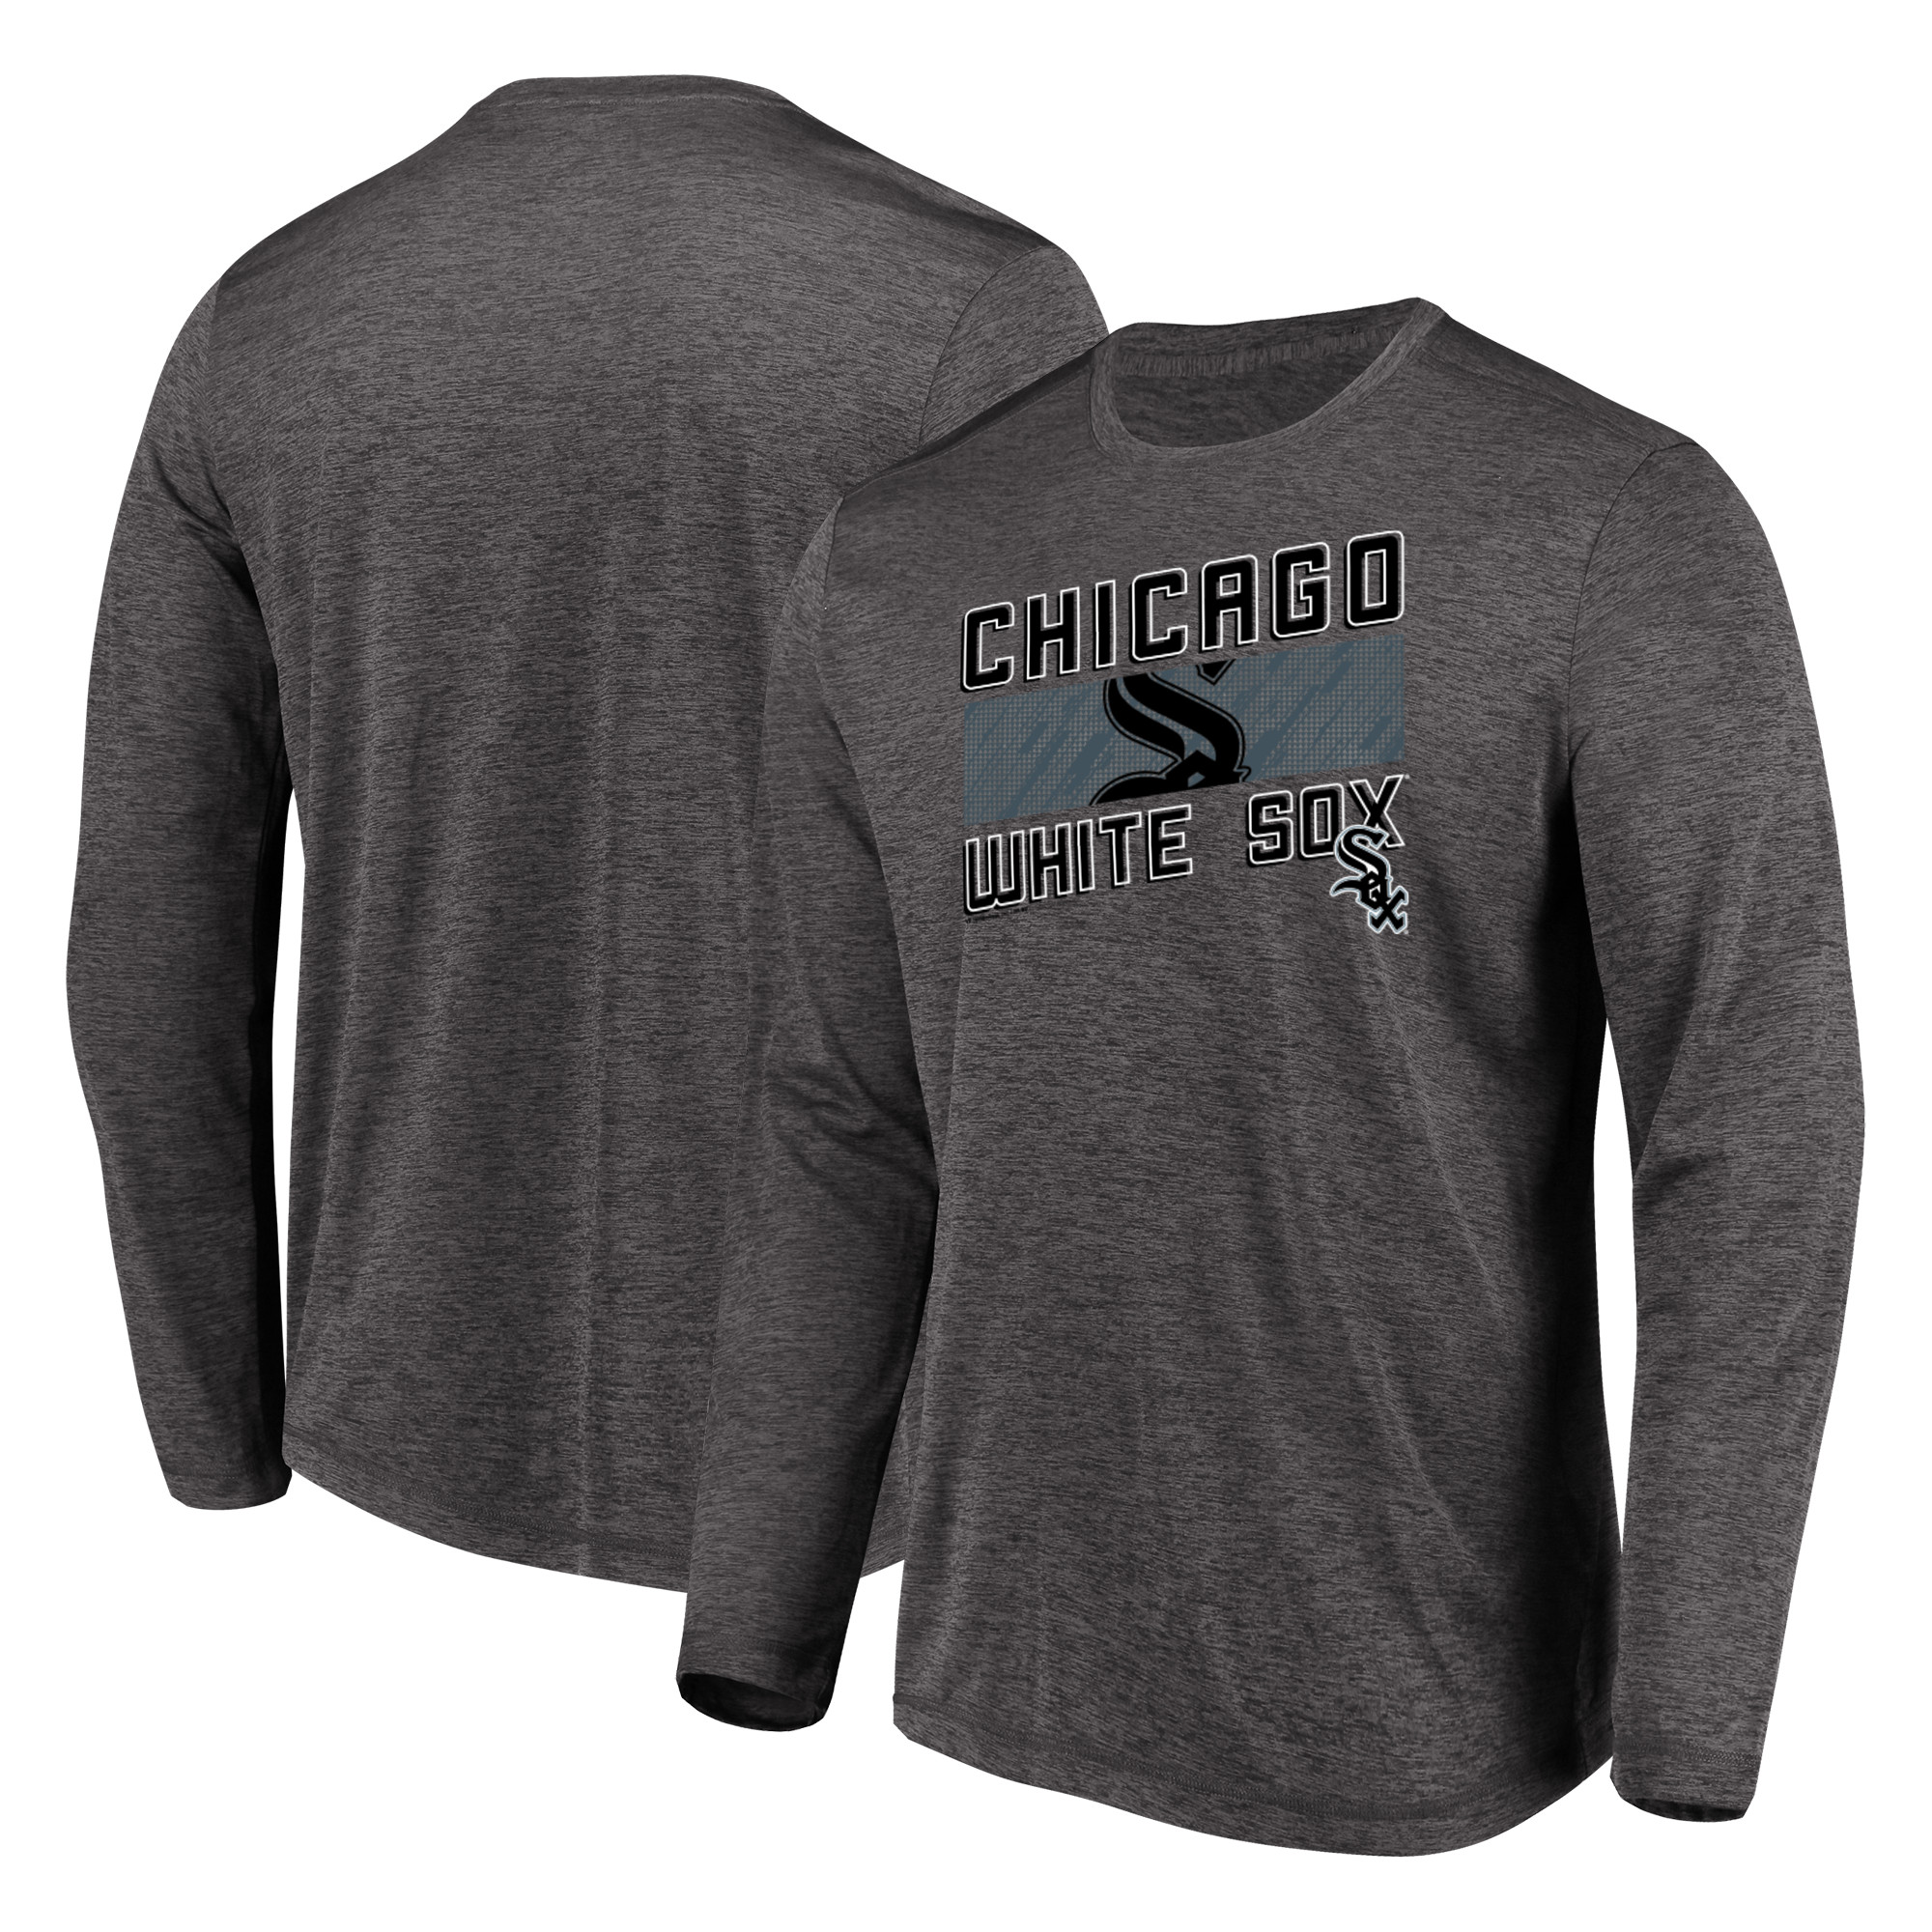 Men's Majestic Heathered Charcoal Chicago White Sox Big & Tall Long Sleeve Team T-Shirt